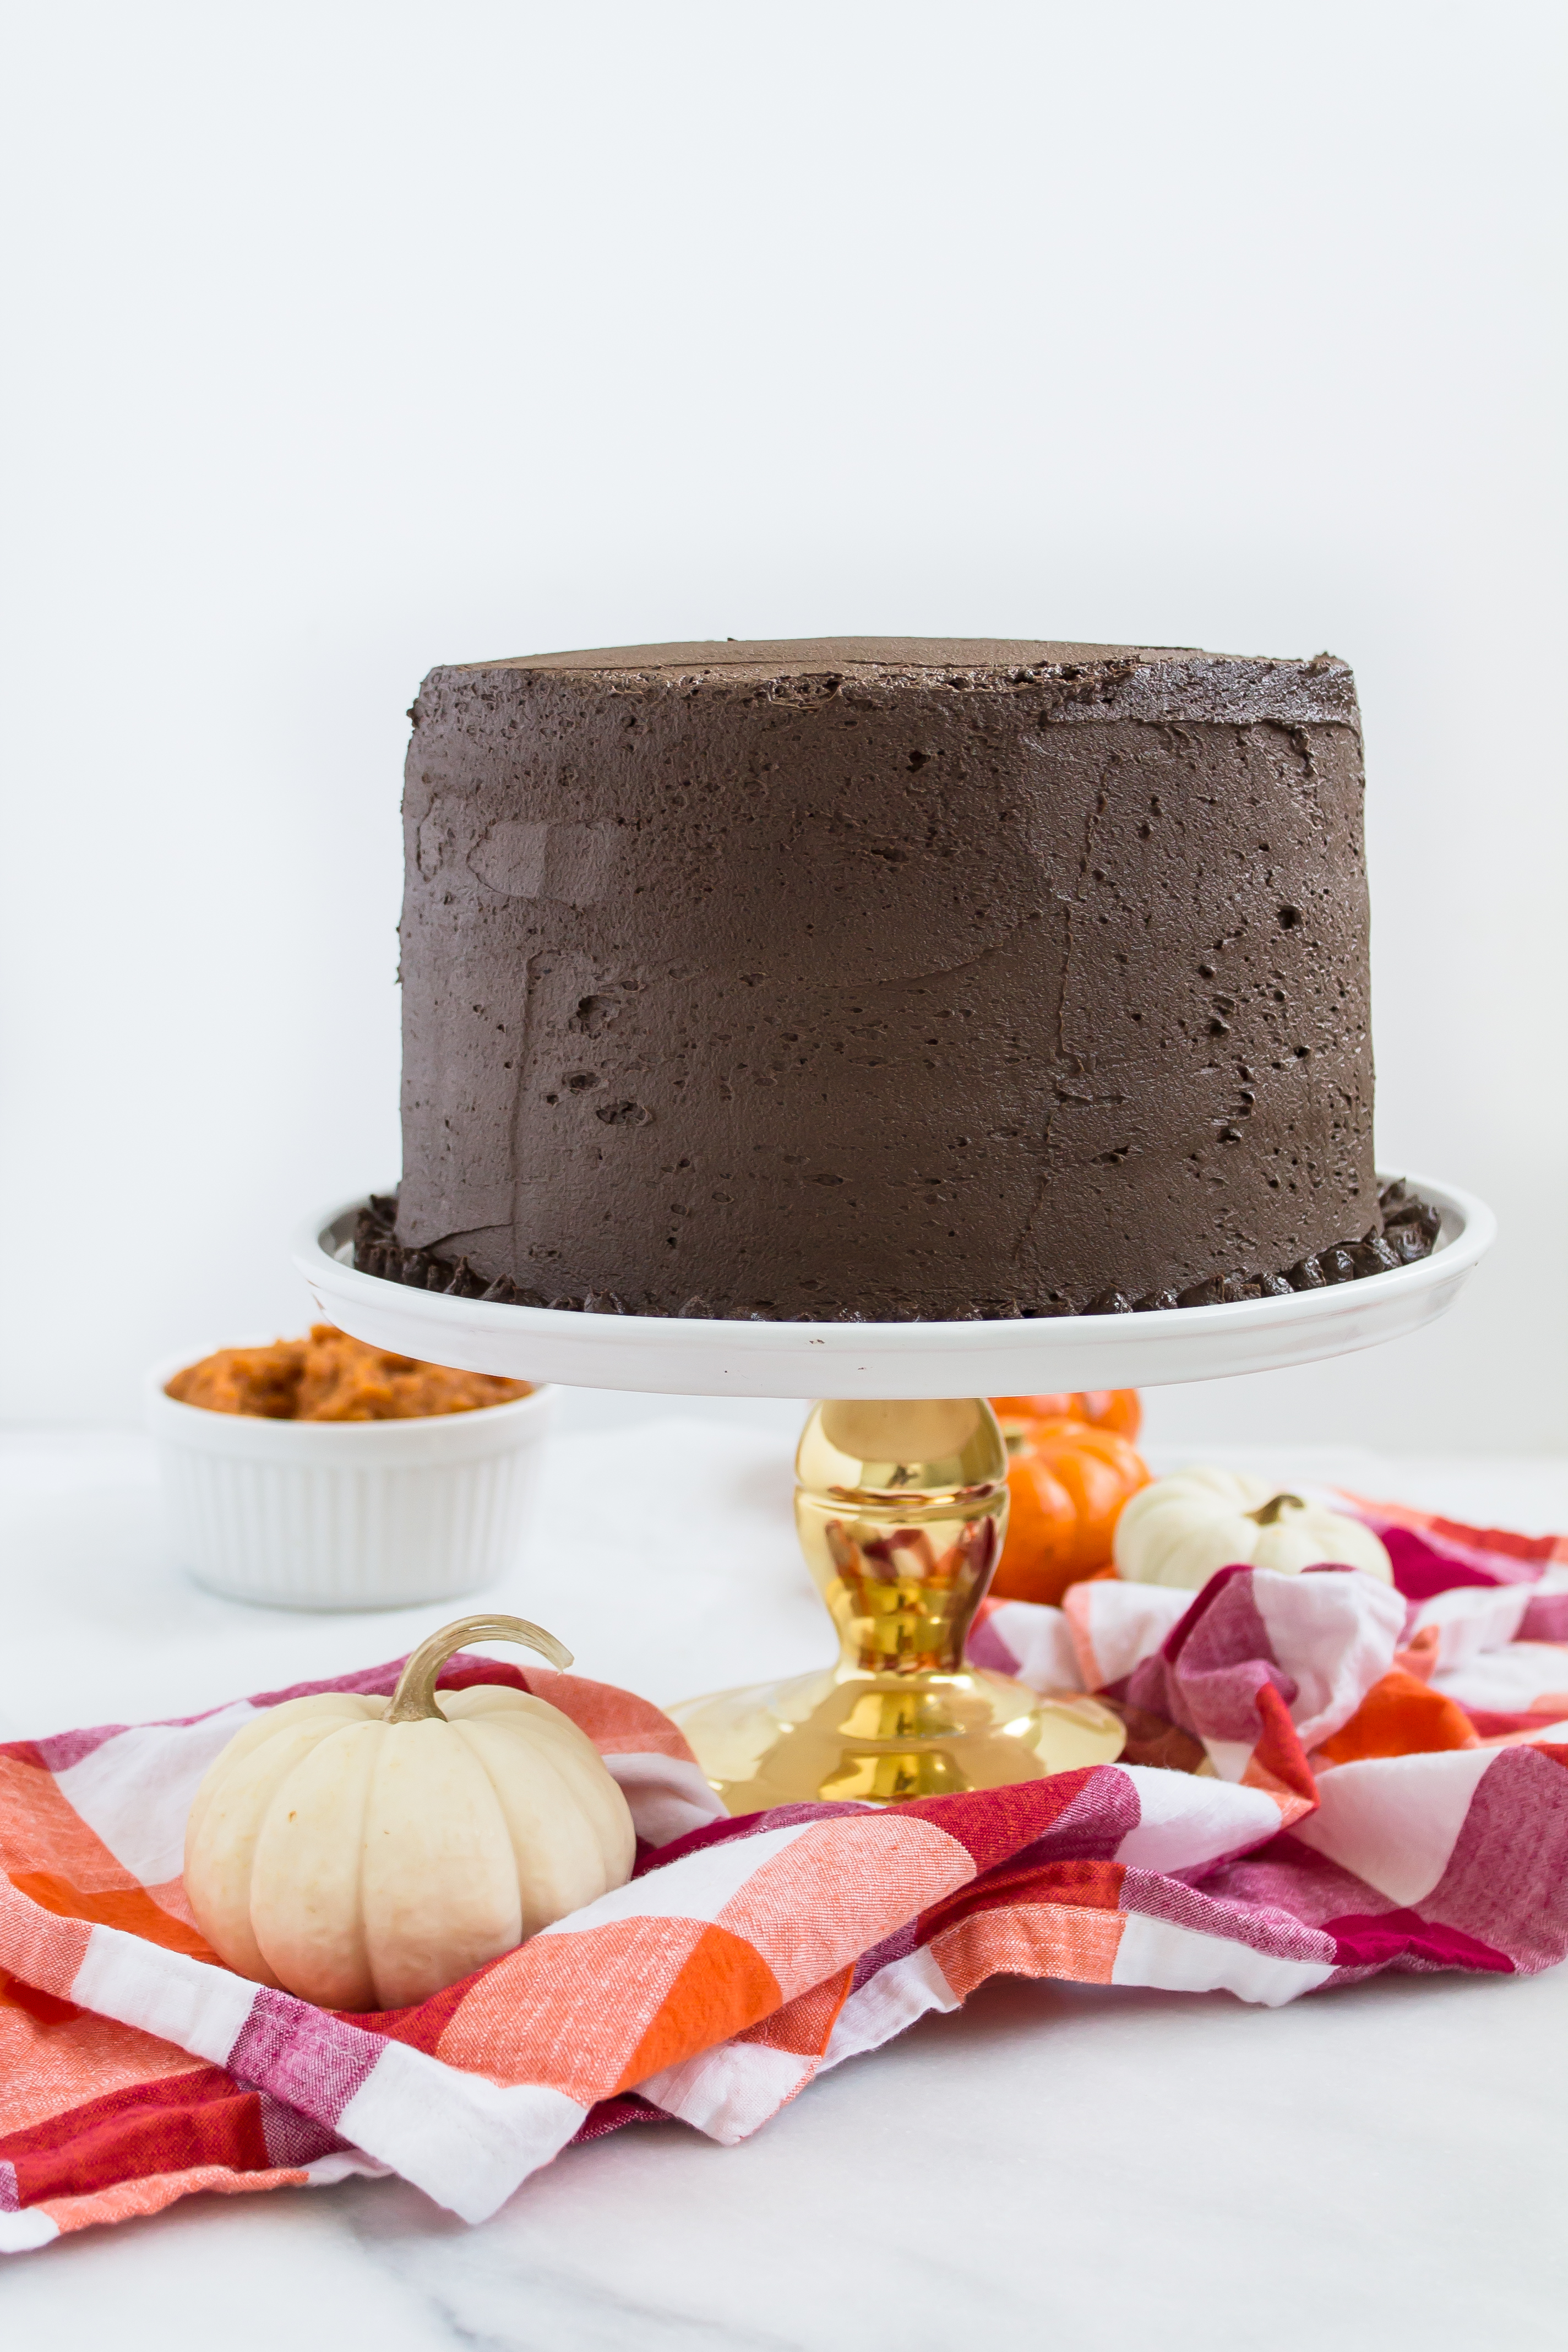 This incredibly moist spiced pumpkin cake topped with a rich and fluffy chocolate frosting is perfect for fall. Click through for the recipe. | glitterinc.com | @glitterinc - Pumpkin Cake Recipe with Fluffy Chocolate Frosting by North Carolina foodie blogger Glitter, Inc.